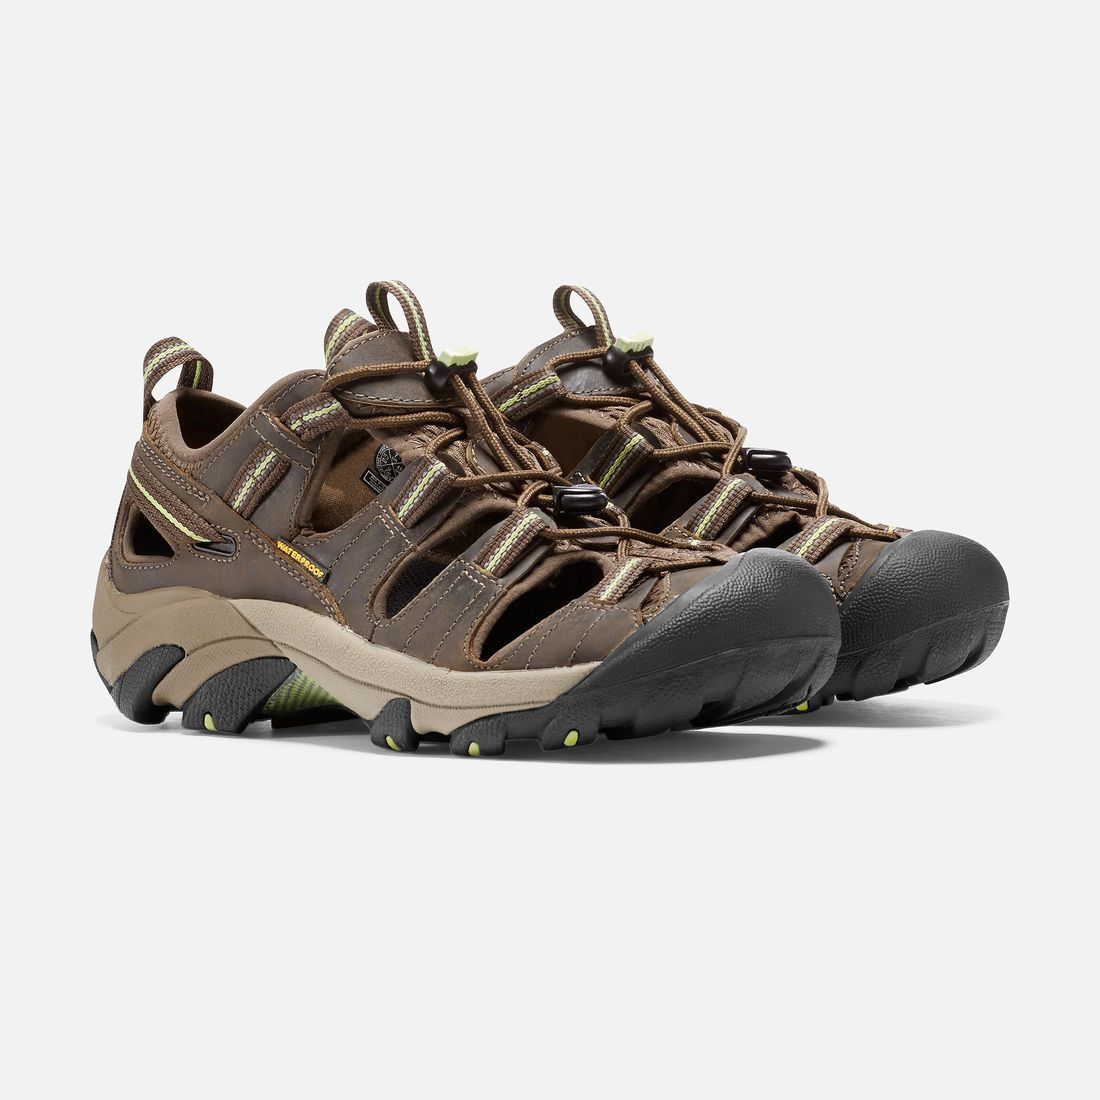 Keen Hiking Sandal Shoe | Arroyo II | Chocolate Chip and Sap Green